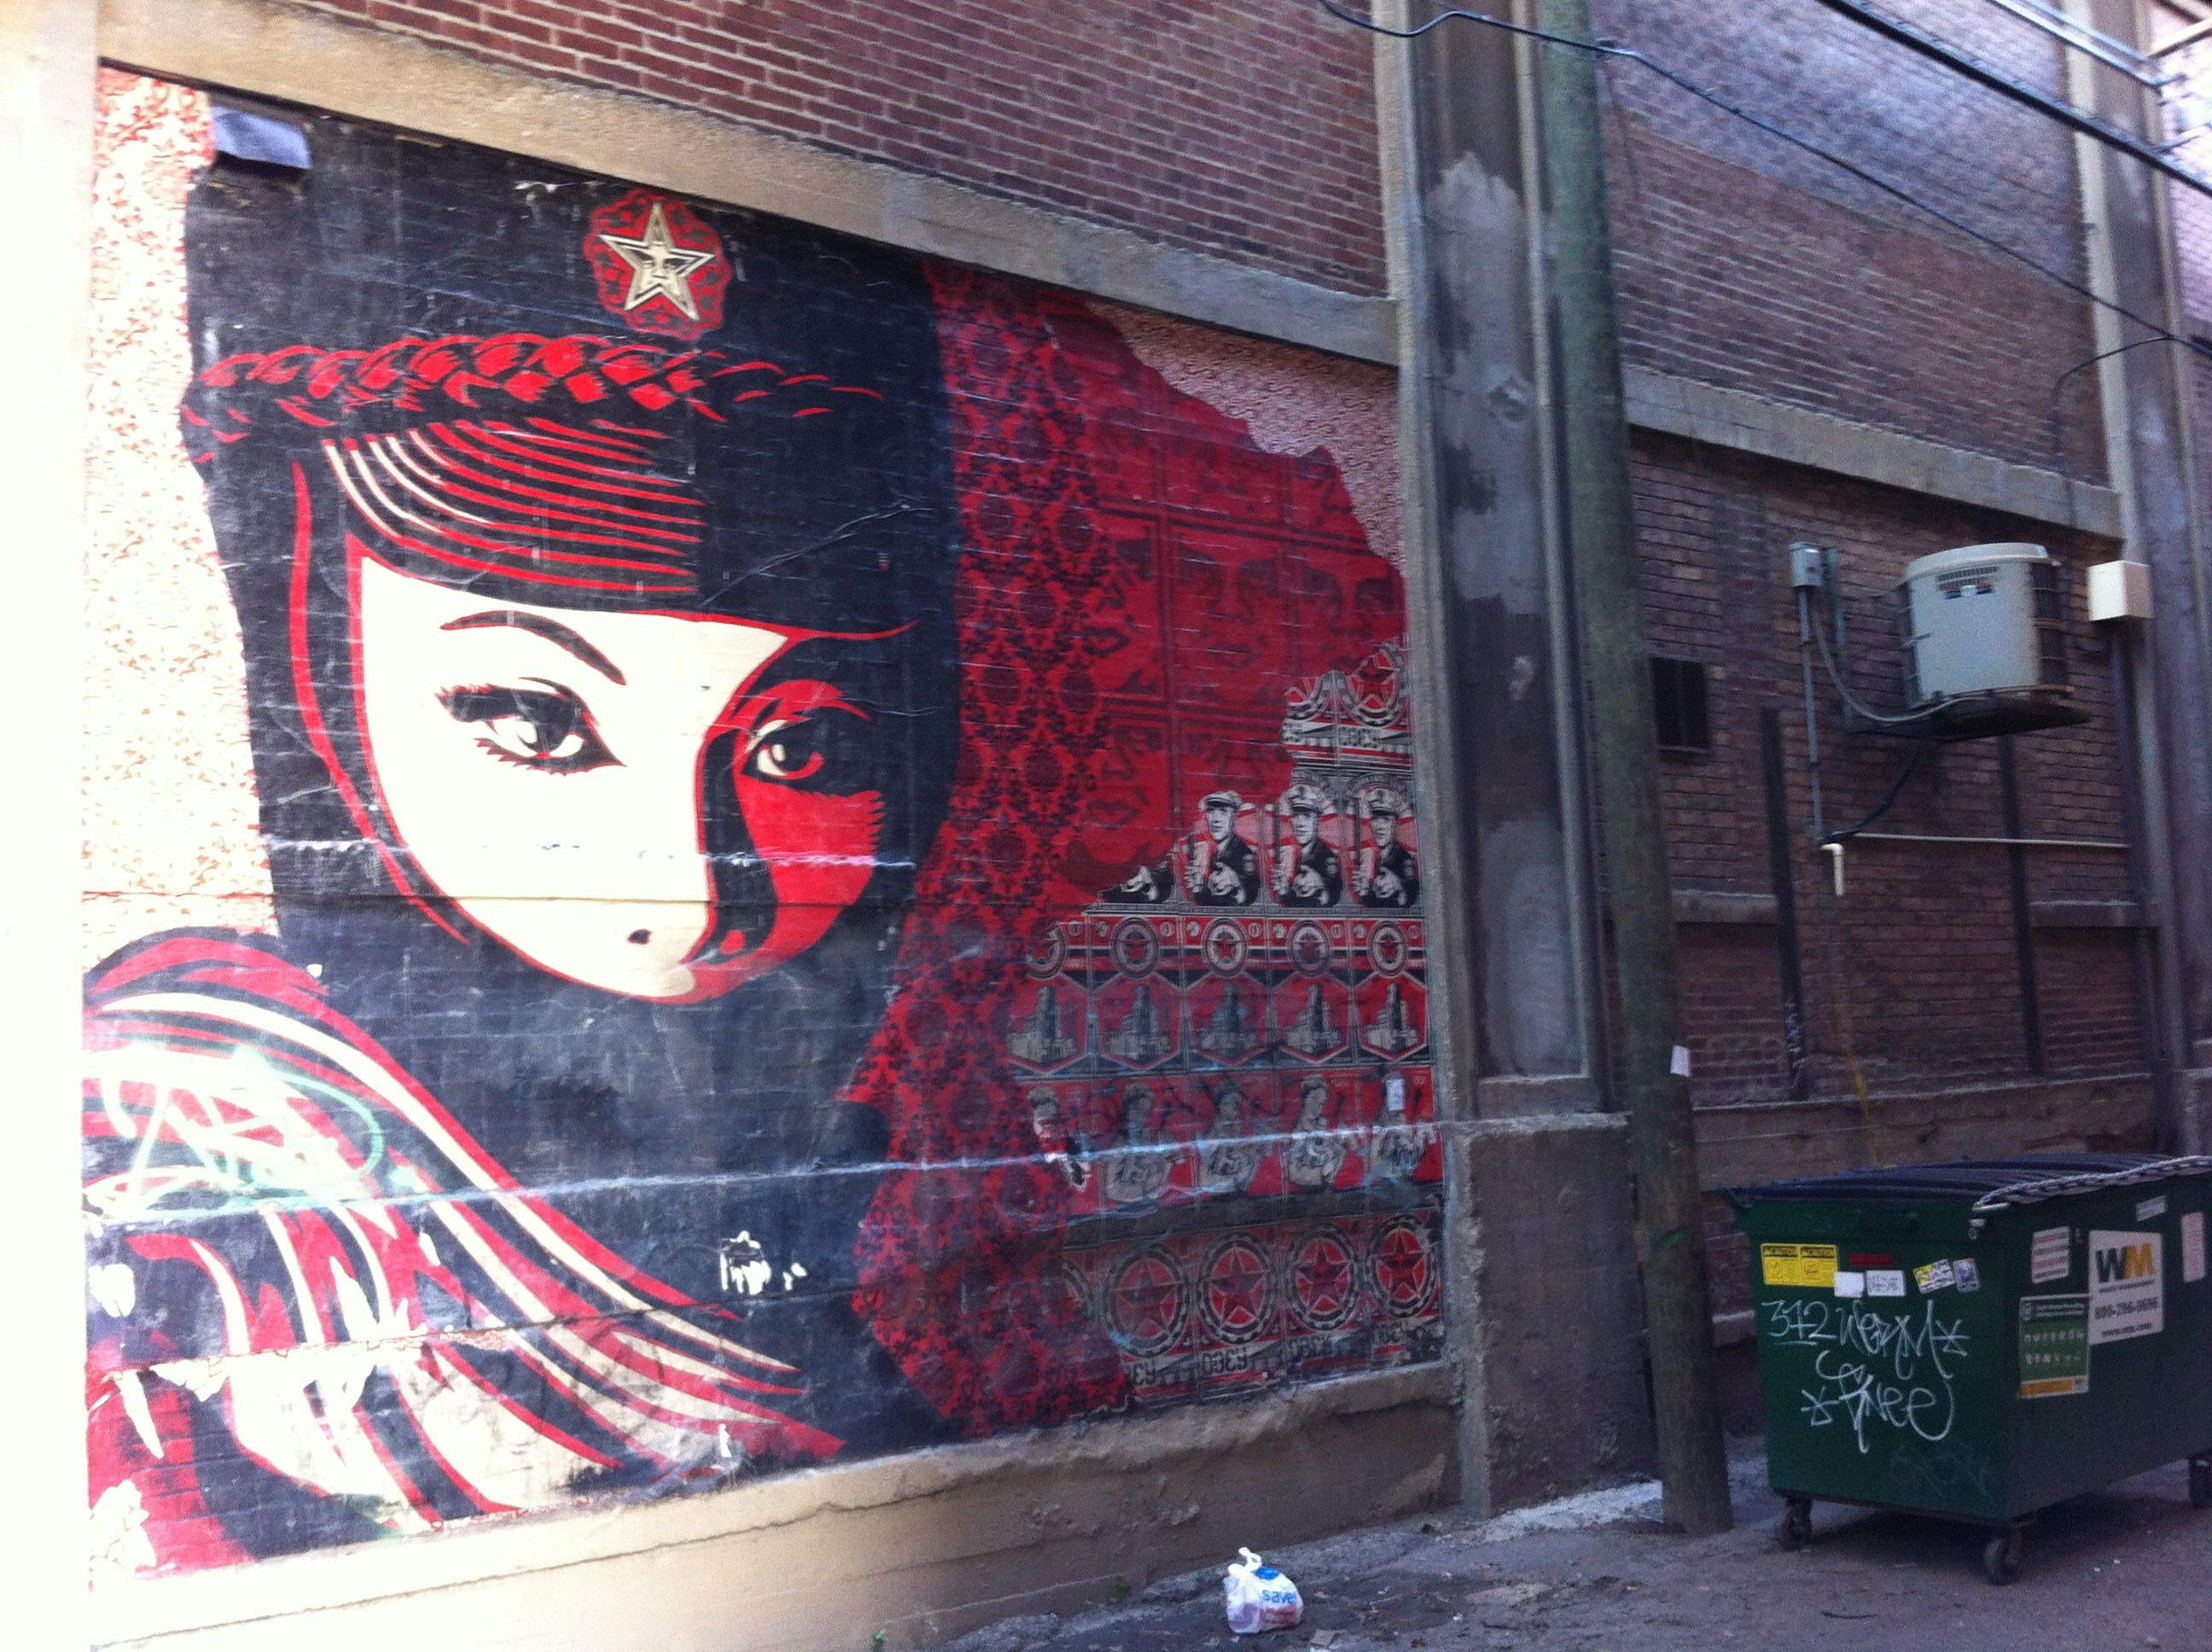 Alley, South Side, Chicago